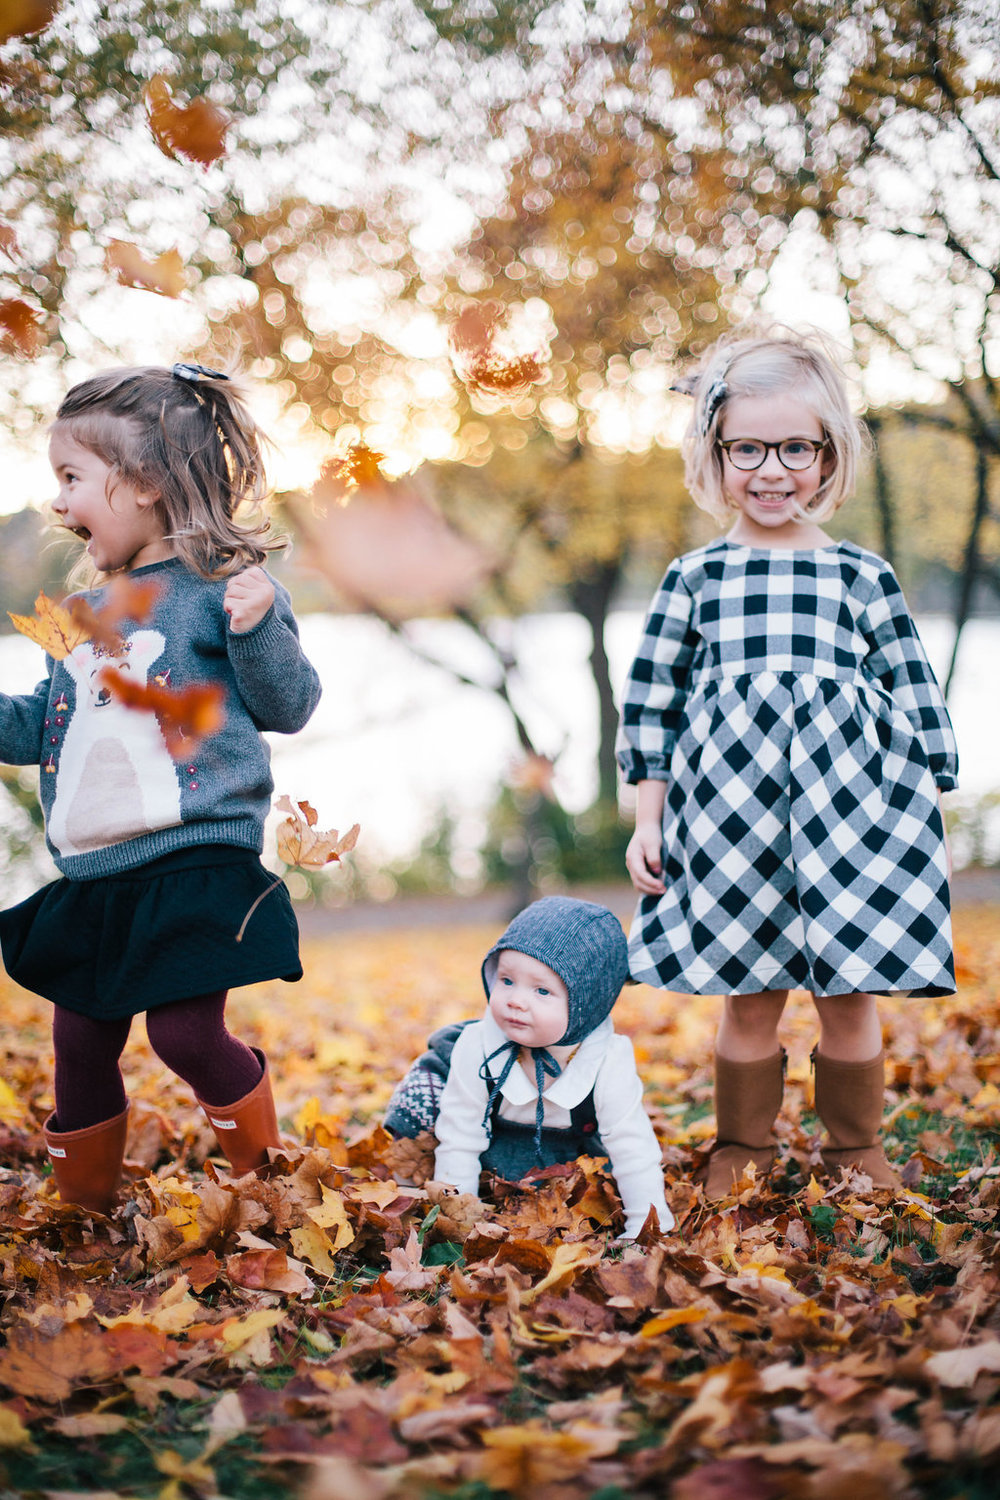 Hope Feathers Photography - Hanna Andersson Bear Hugs Family Sweater Collection